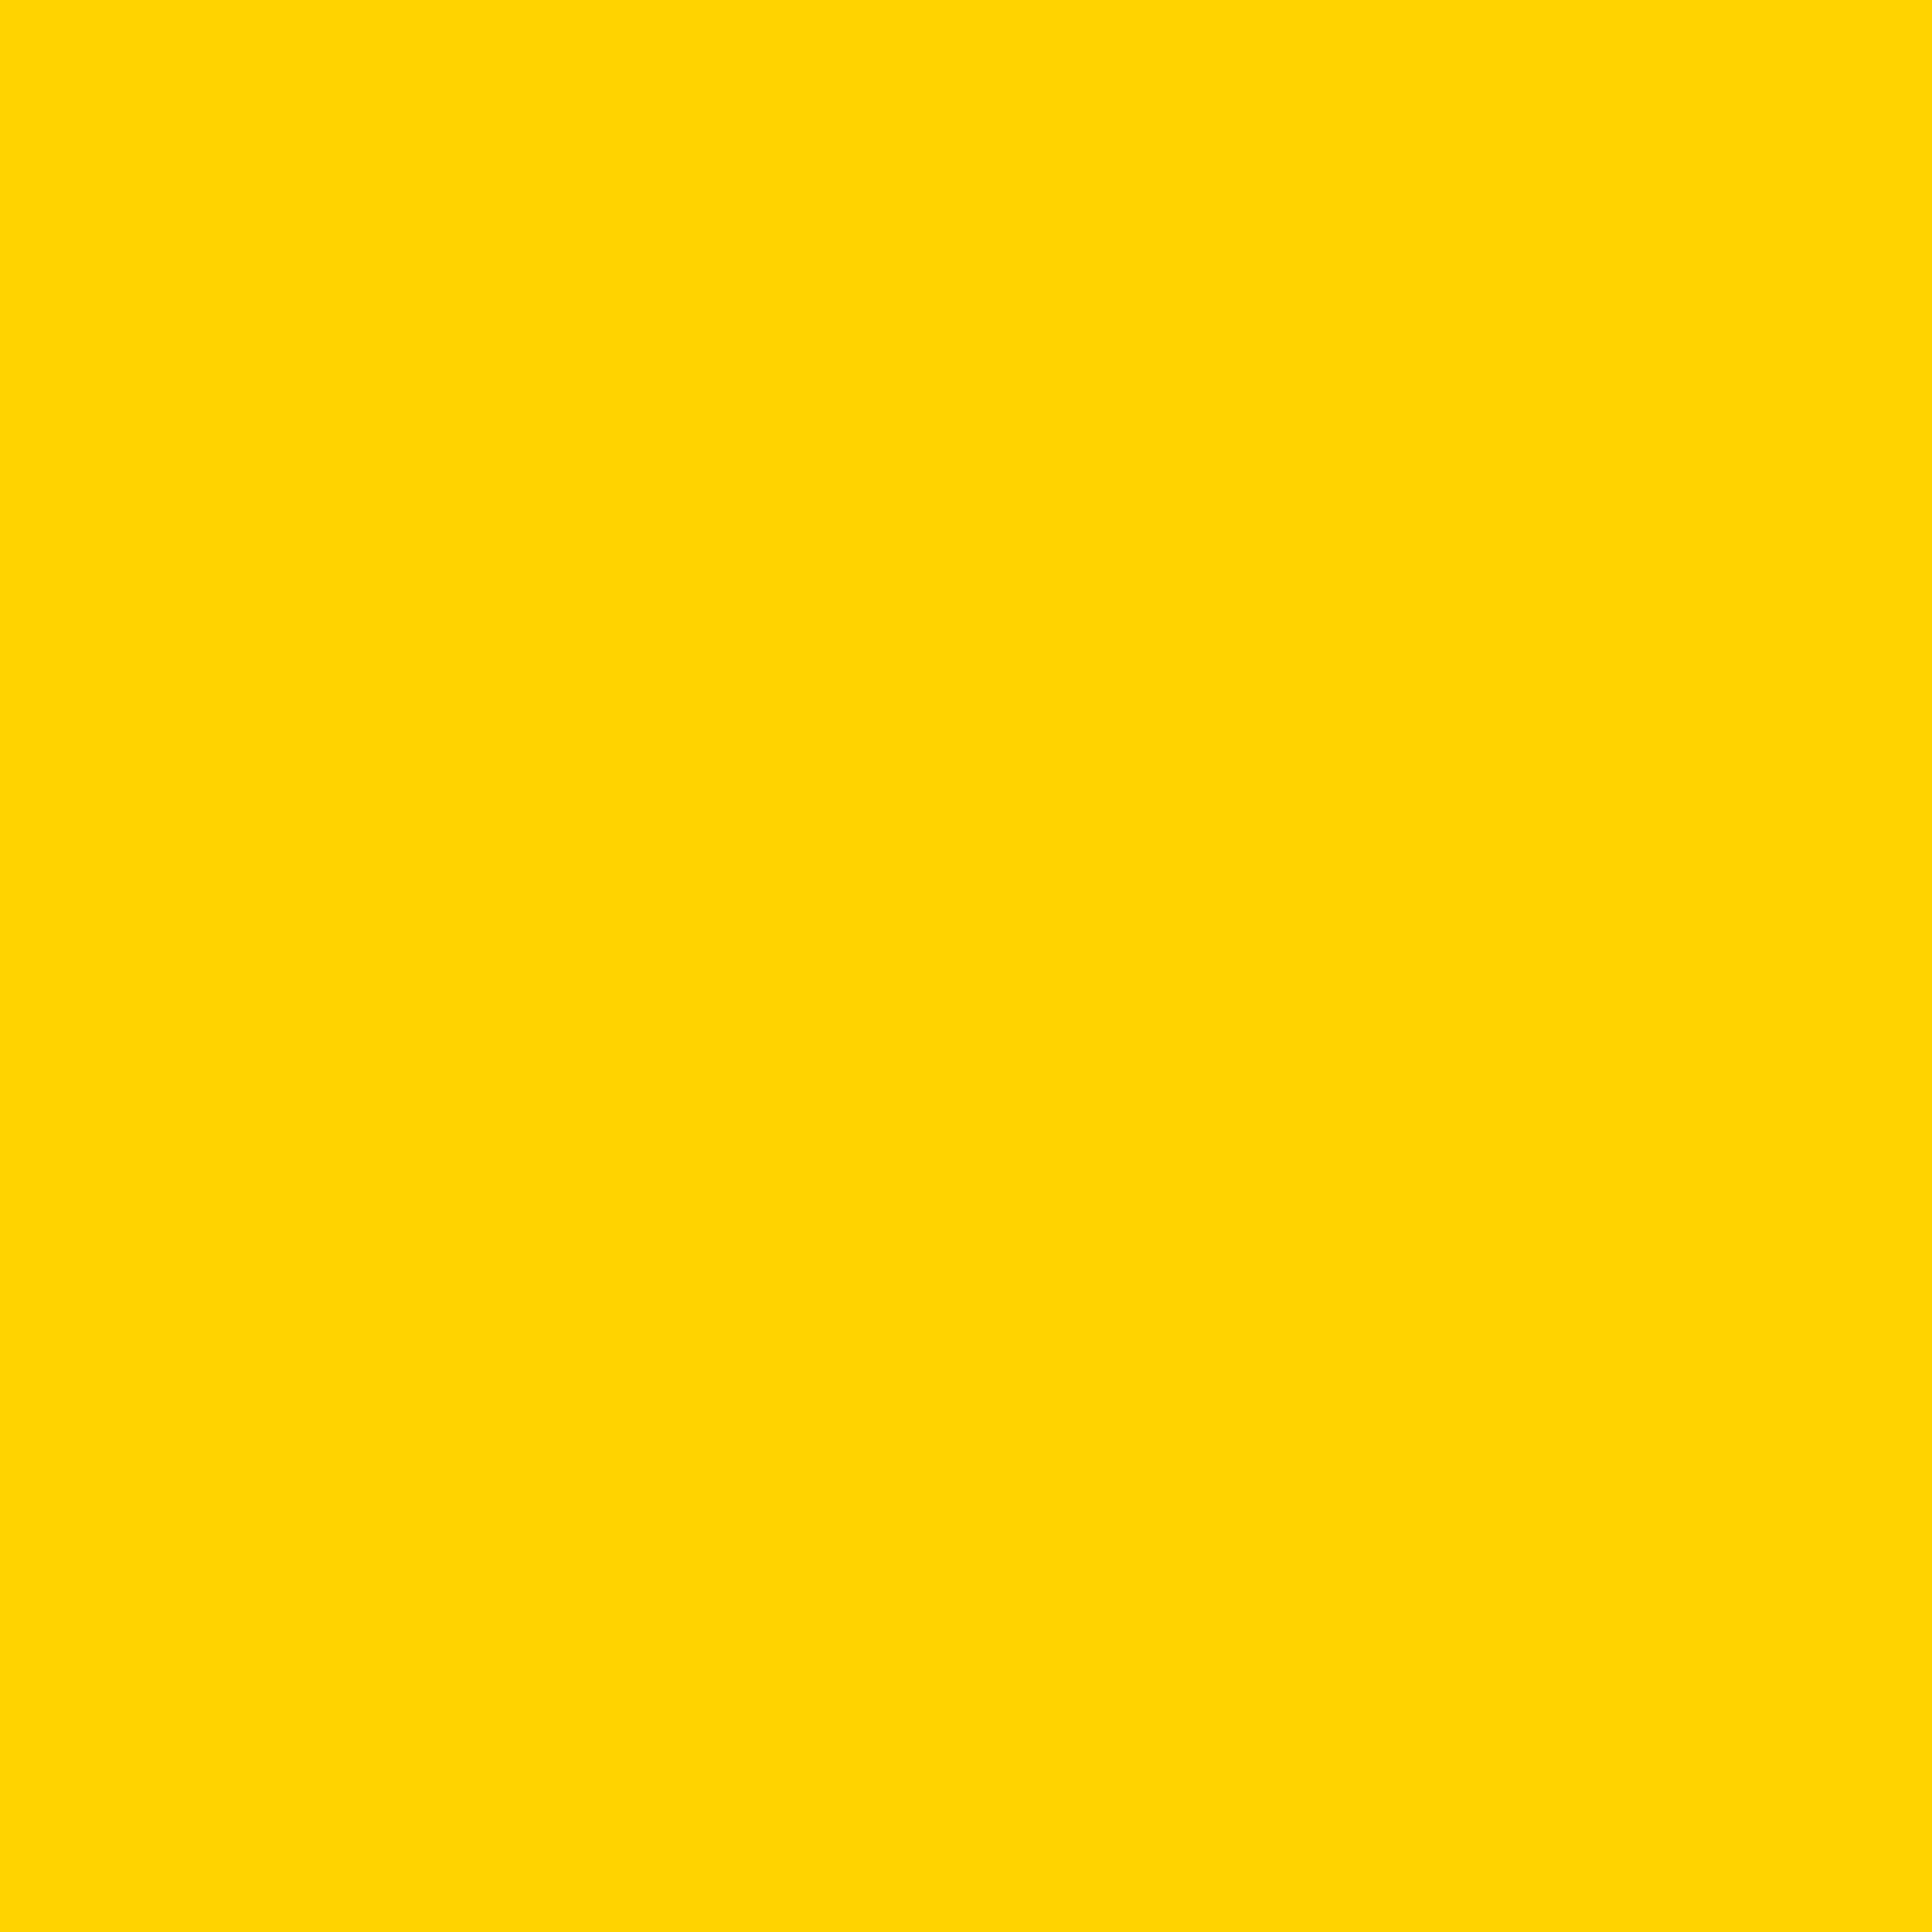 3600x3600 Cyber Yellow Solid Color Background